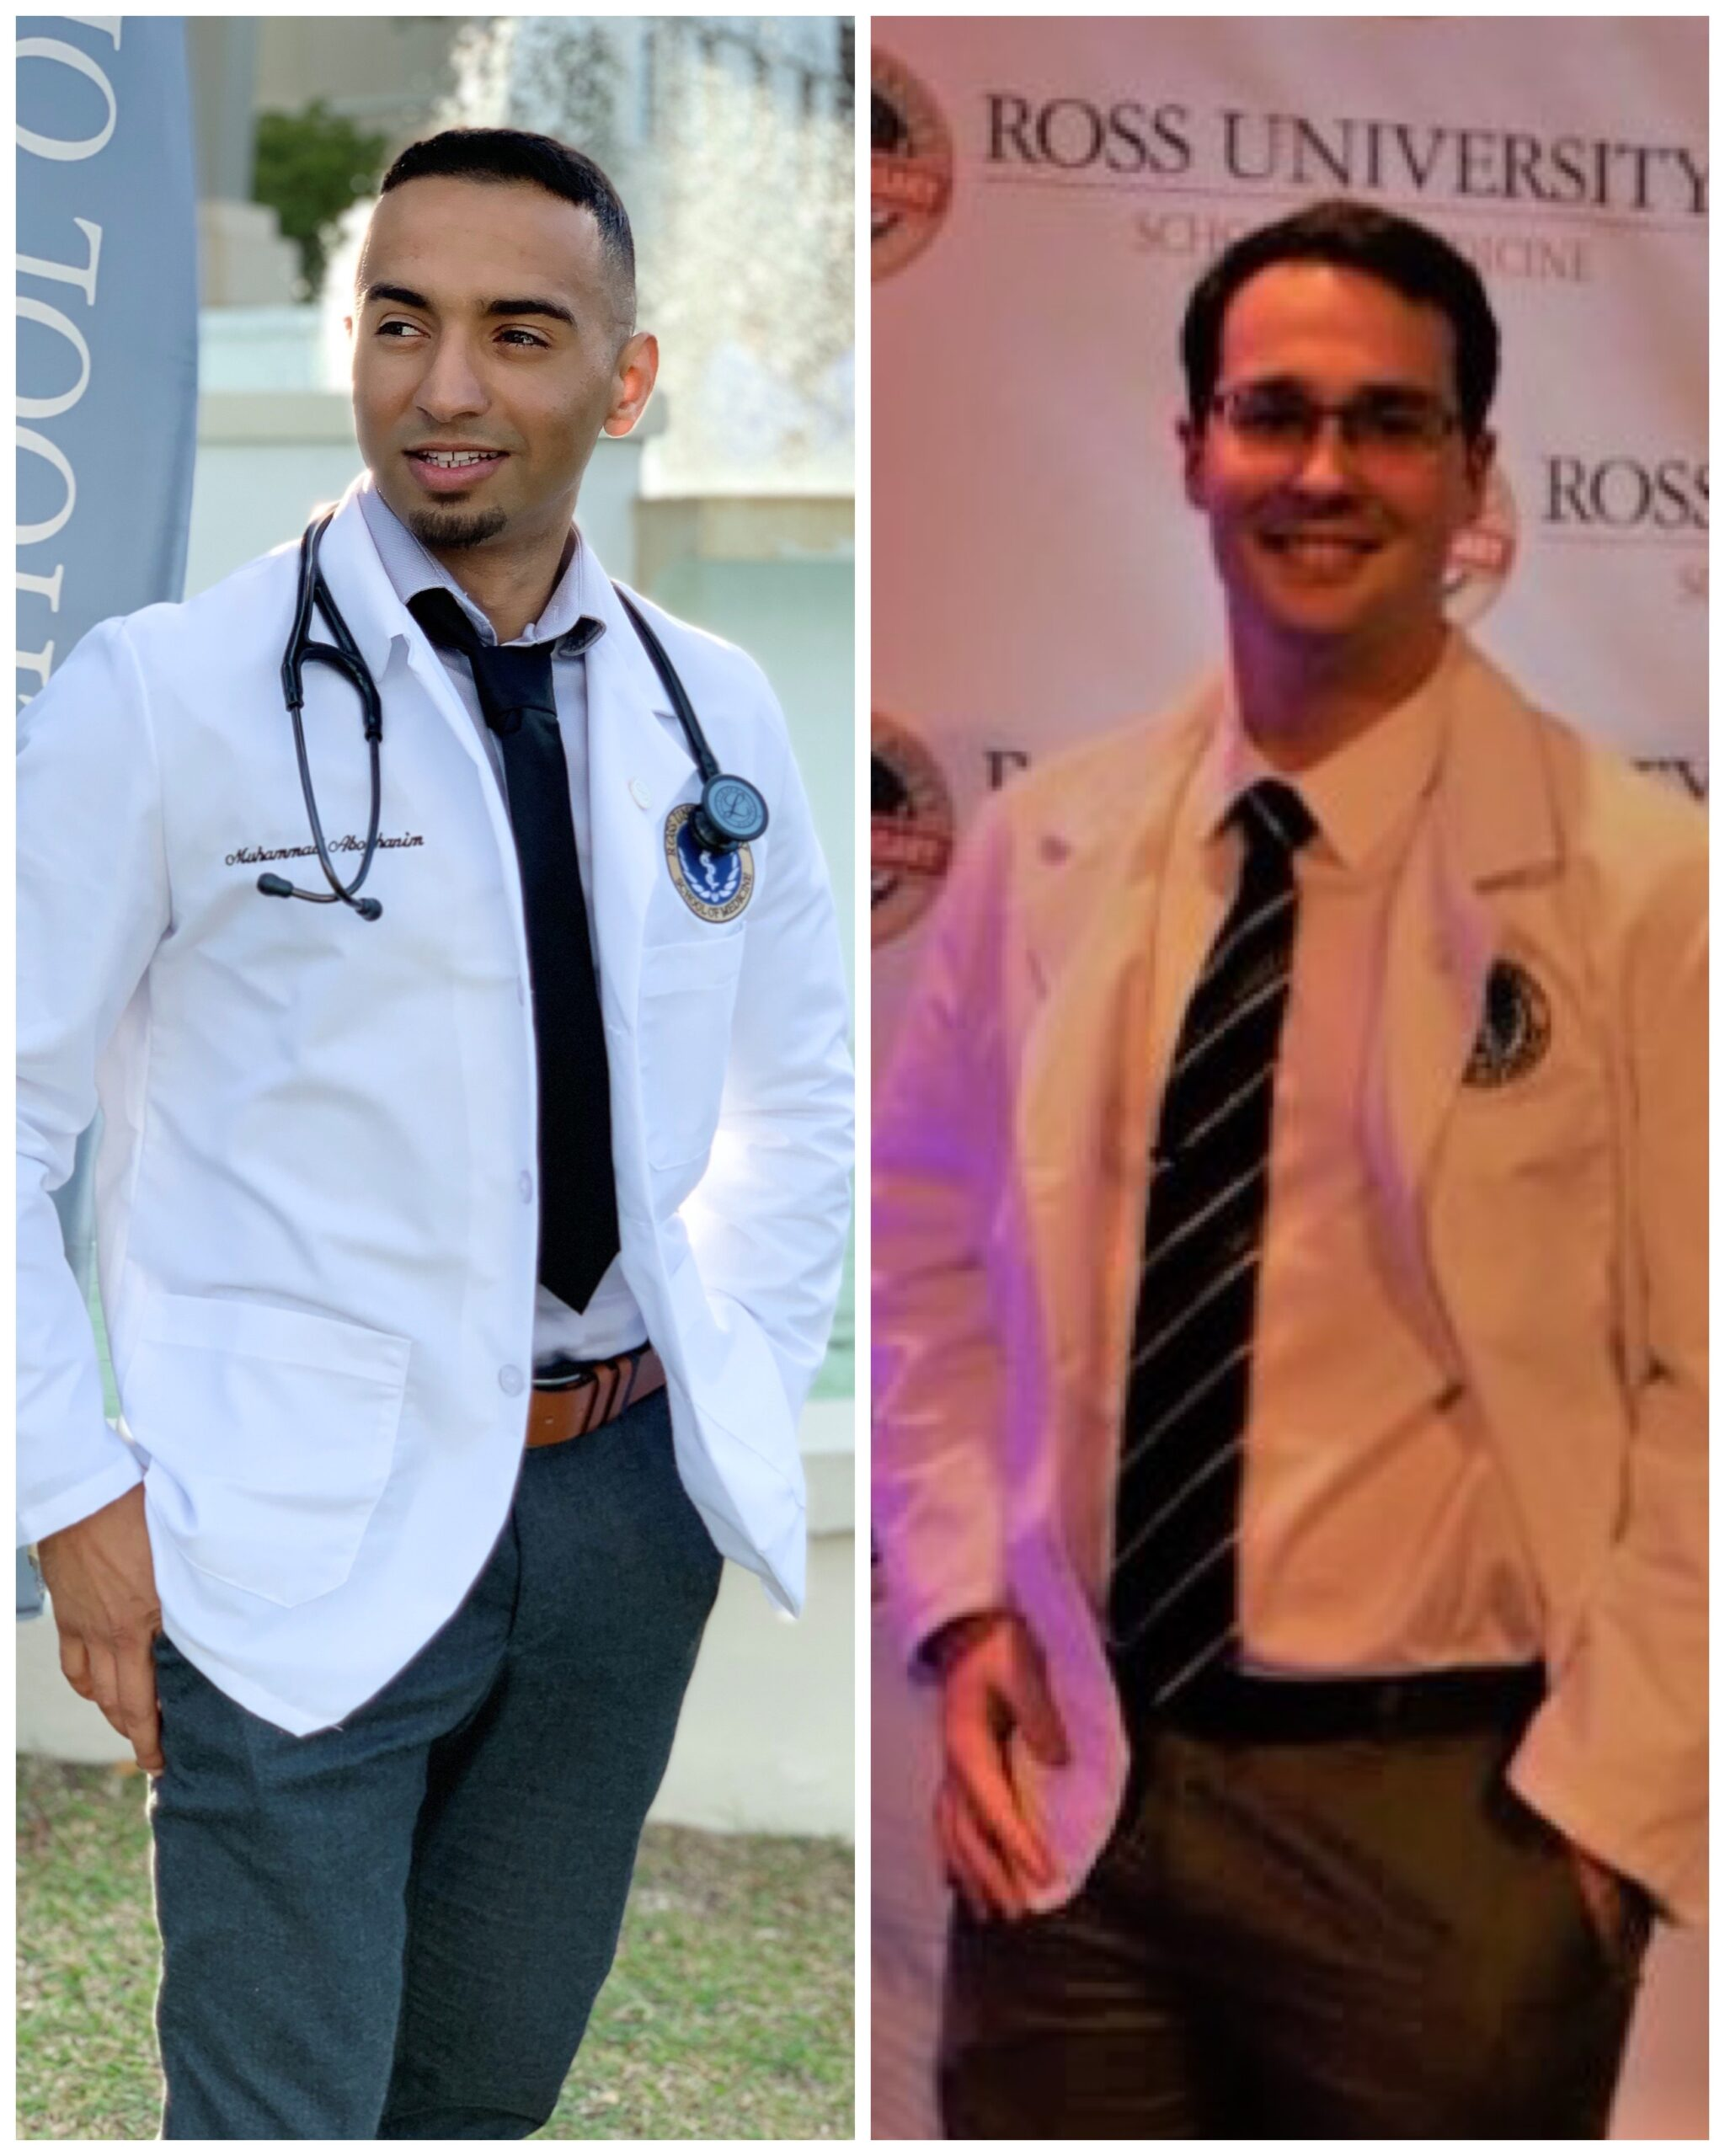 Two Medical Students Instinctively Implement the Medical ABCs and Their Heroic Efforts Saved a Man Who Had a Heart Attack